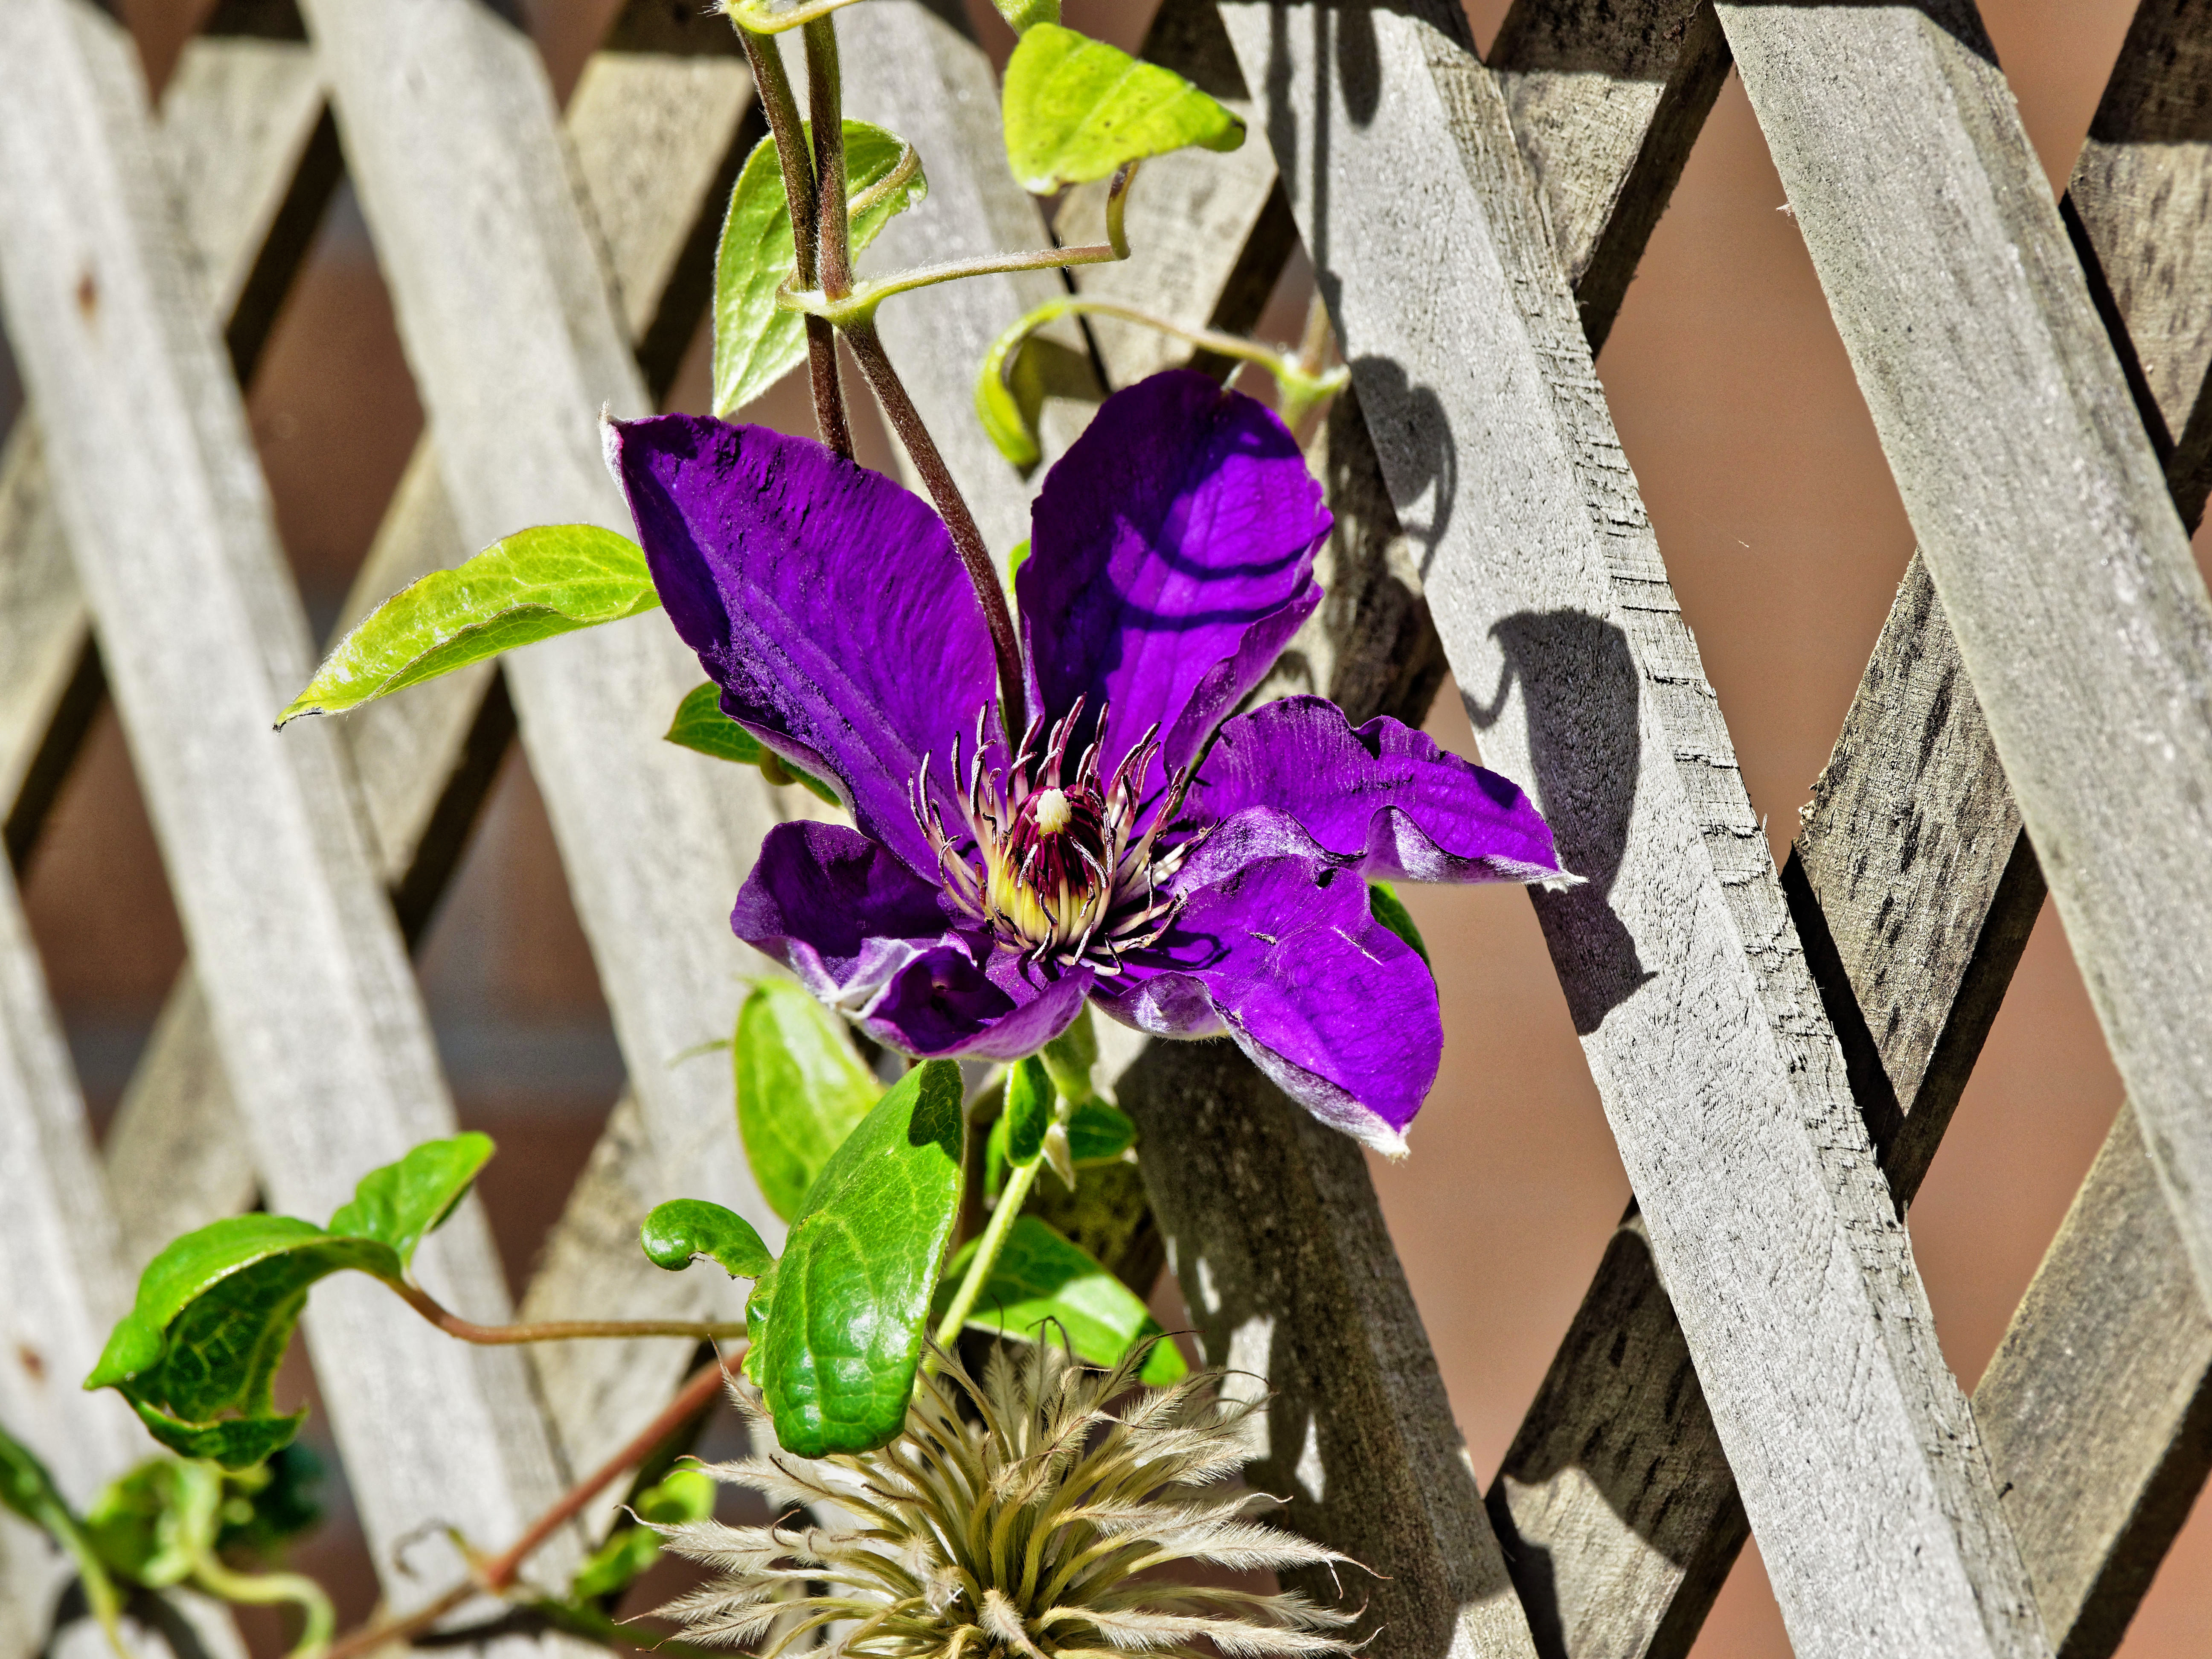 This should be Clematis.jpeg.  Is it missing?